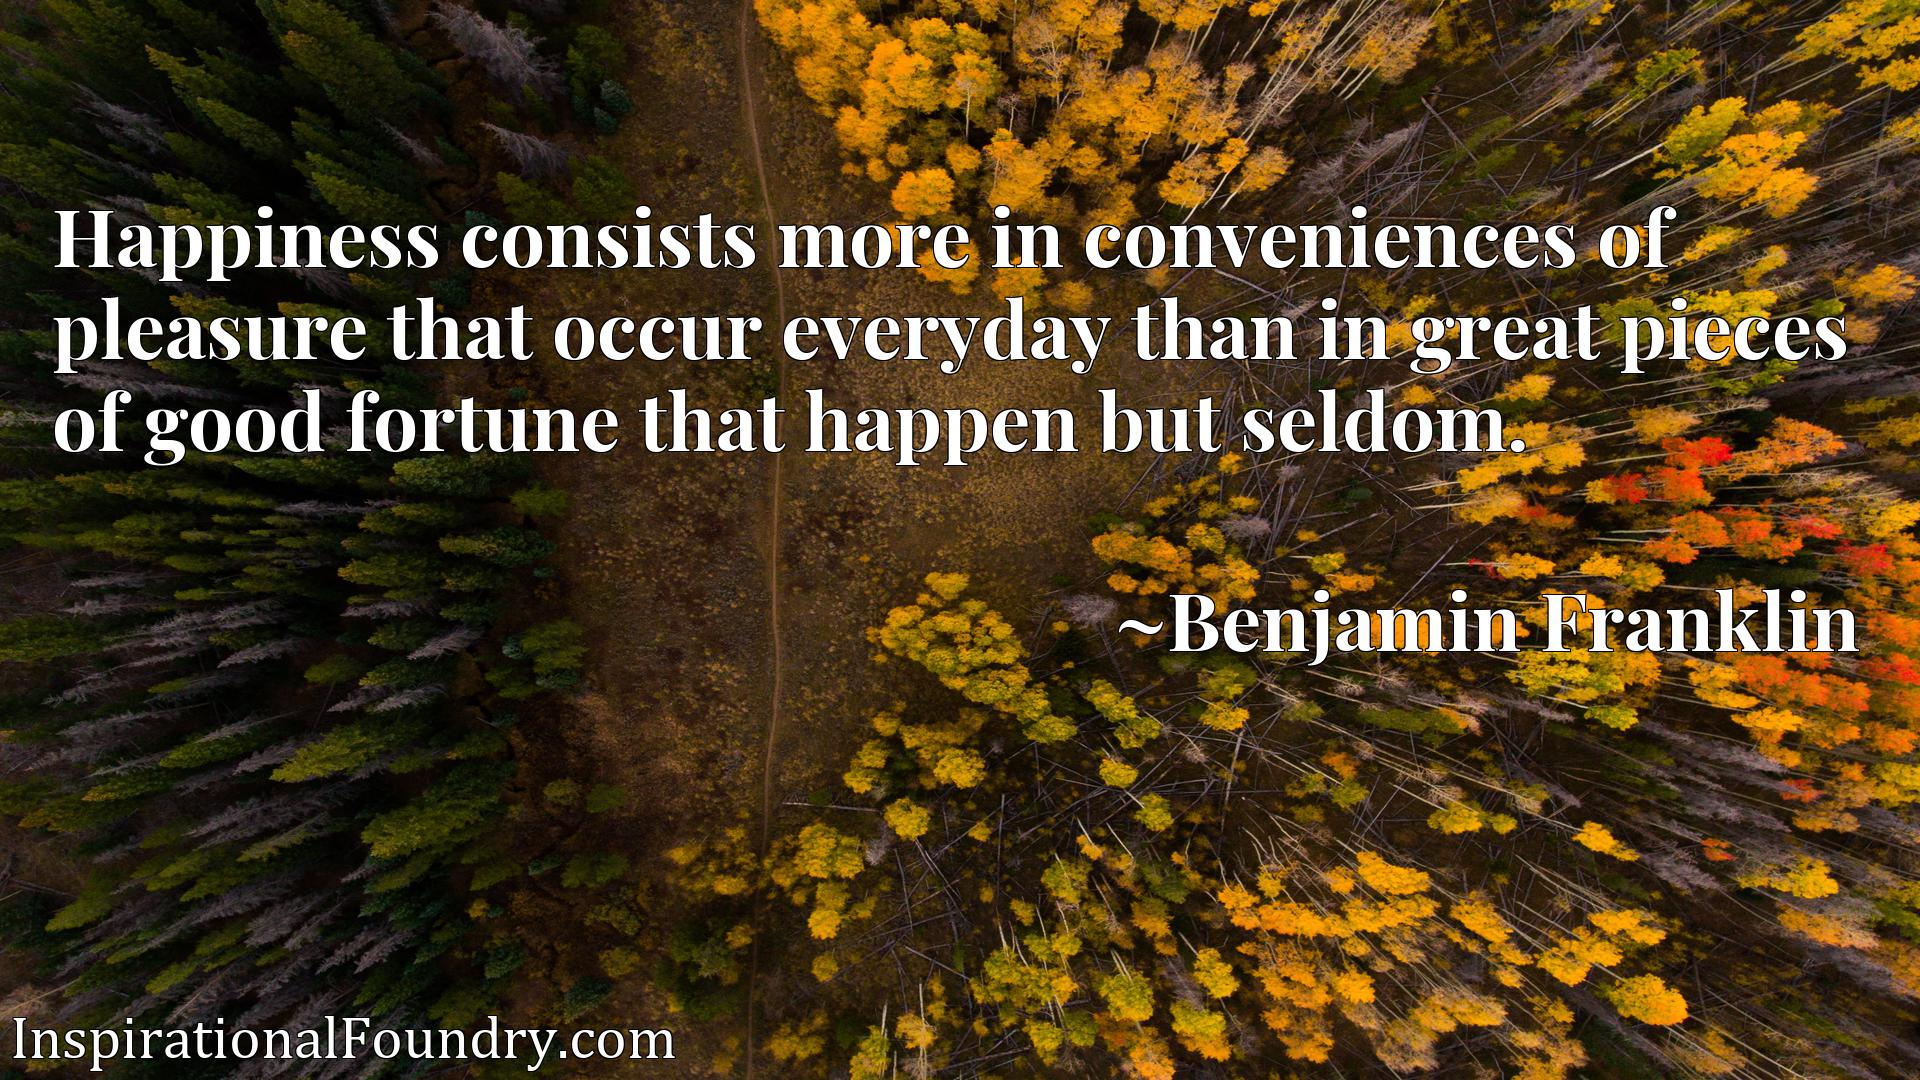 Happiness consists more in conveniences of pleasure that occur everyday than in great pieces of good fortune that happen but seldom.